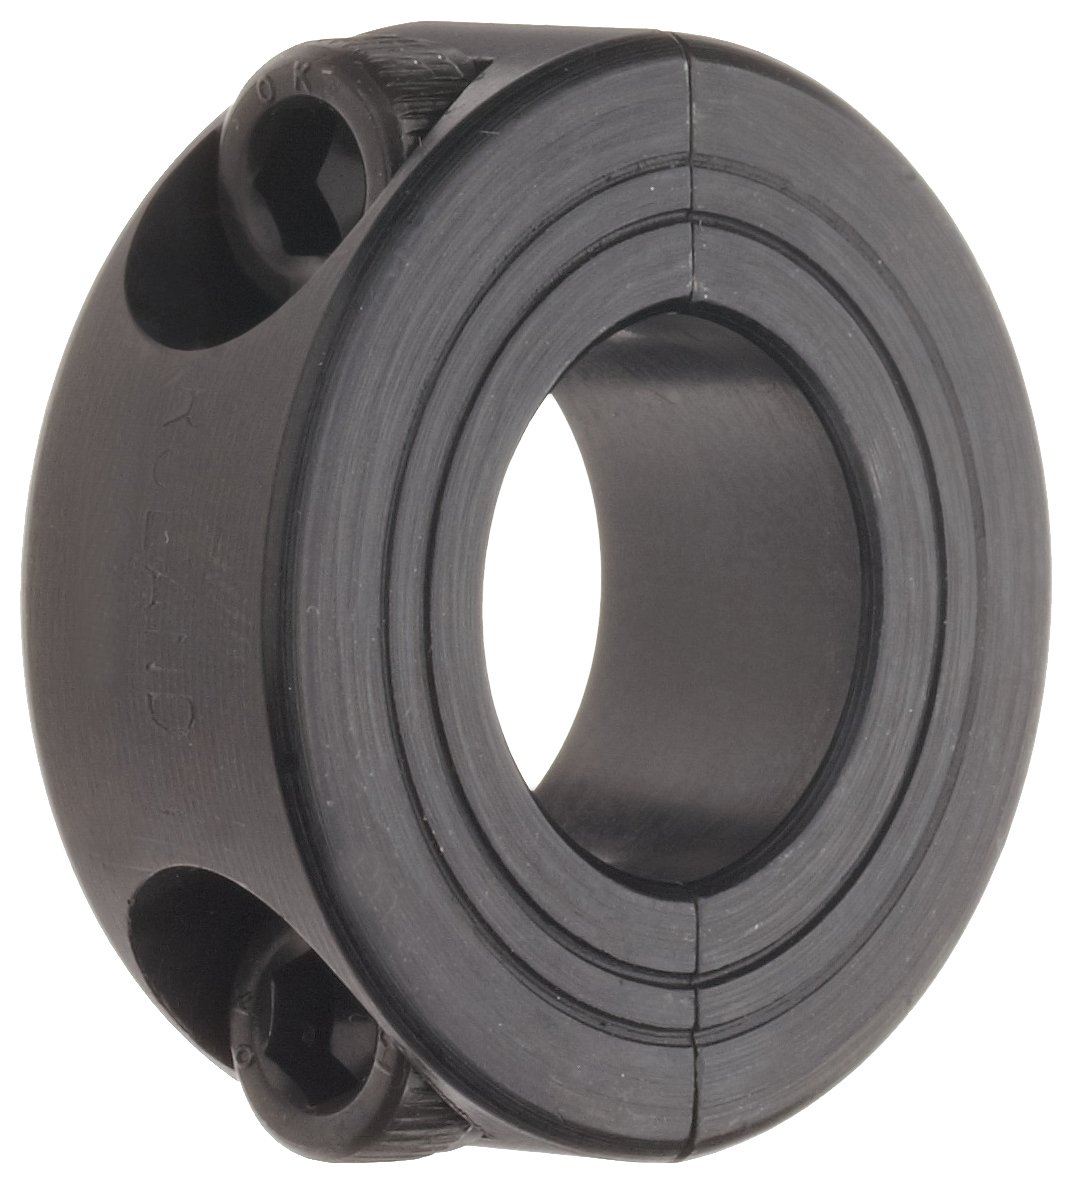 Ruland MSP-13-F Two-Piece Clamping Shaft Collar, Black Oxide Steel, Metric, 13mm Bore, 30mm OD, 11mm Width (Pack of 2) nsk 6207nr deep groove ball bearing single row open snap ring pressed steel cage normal clearance metric 35mm bore 72mm od 17mm width 9500rpm maximum rotational speed 3440lbf static load capacity 5778lbf dynamic load capacity